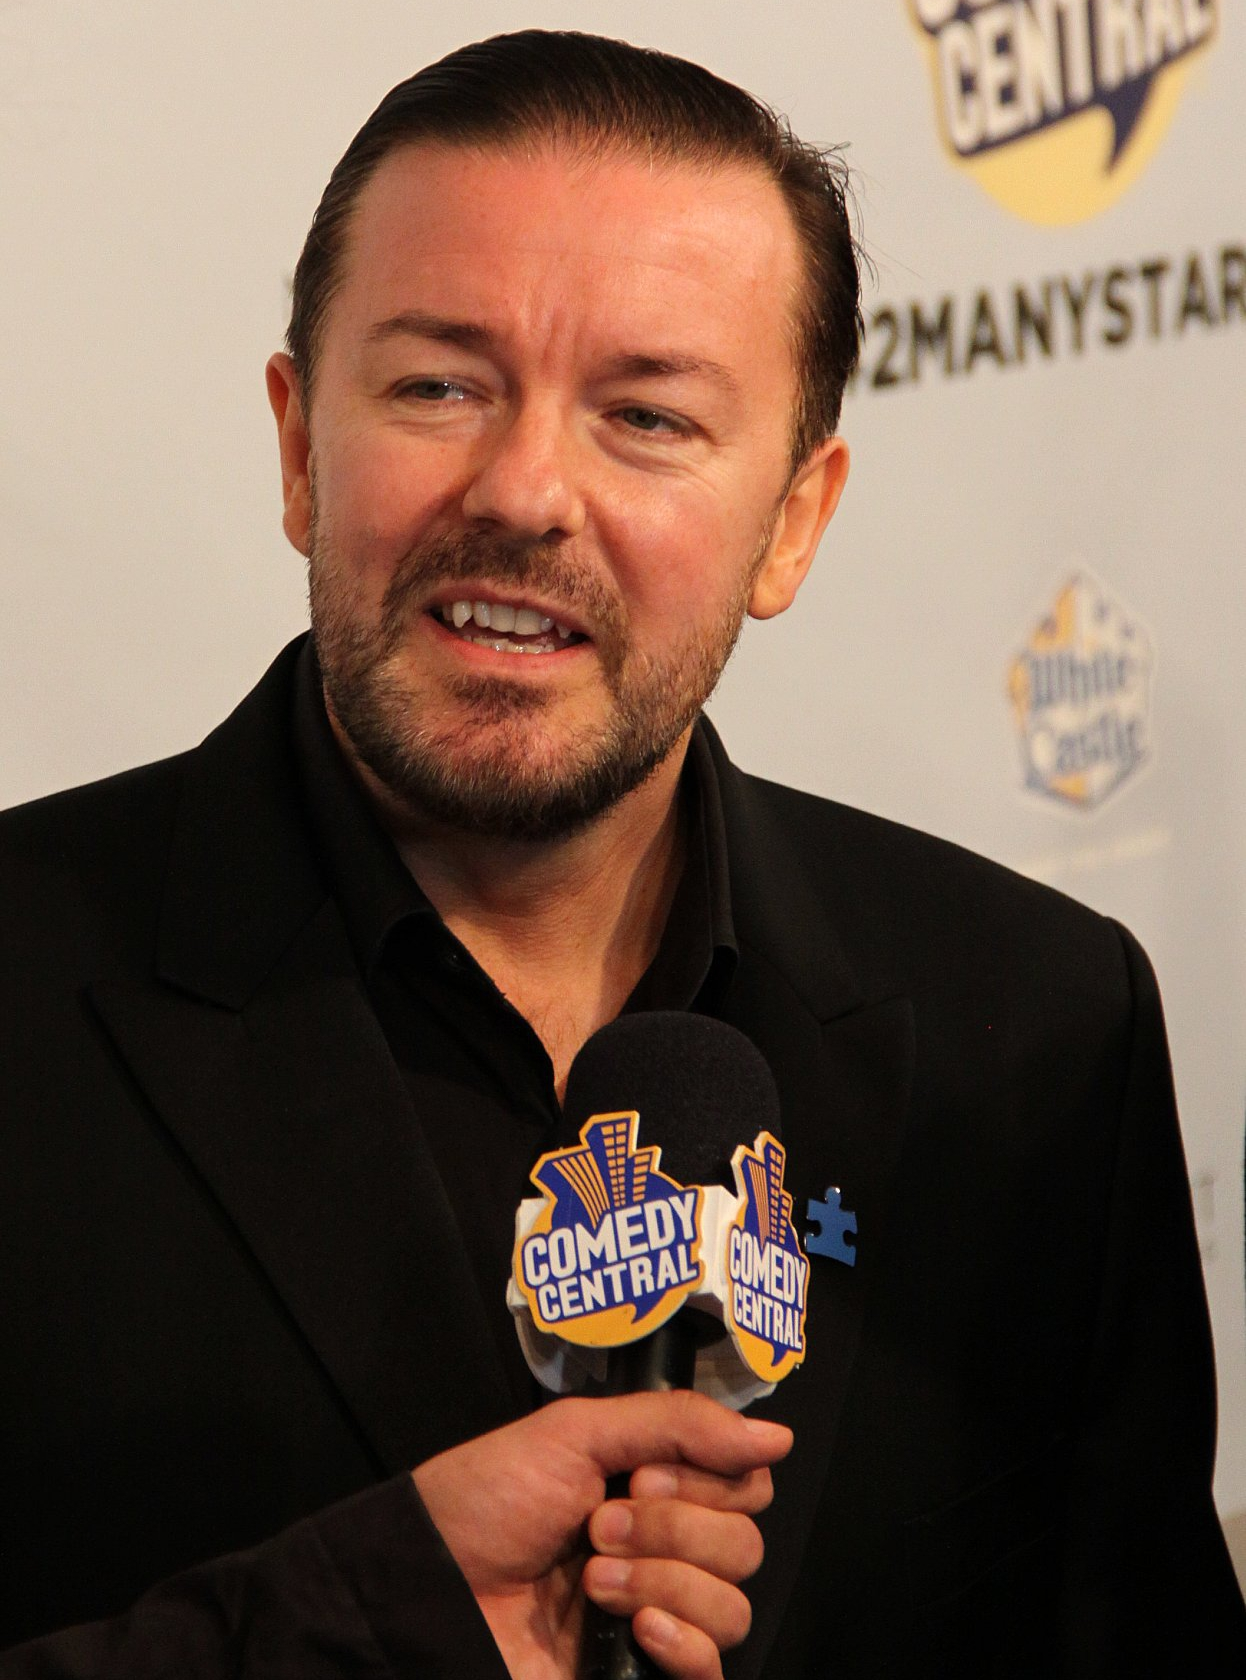 Ricky Gervais, enthusiastic atheist and lampooner of mumbo-jumbo. Smart guy. Funny too. Wikimedia commons.